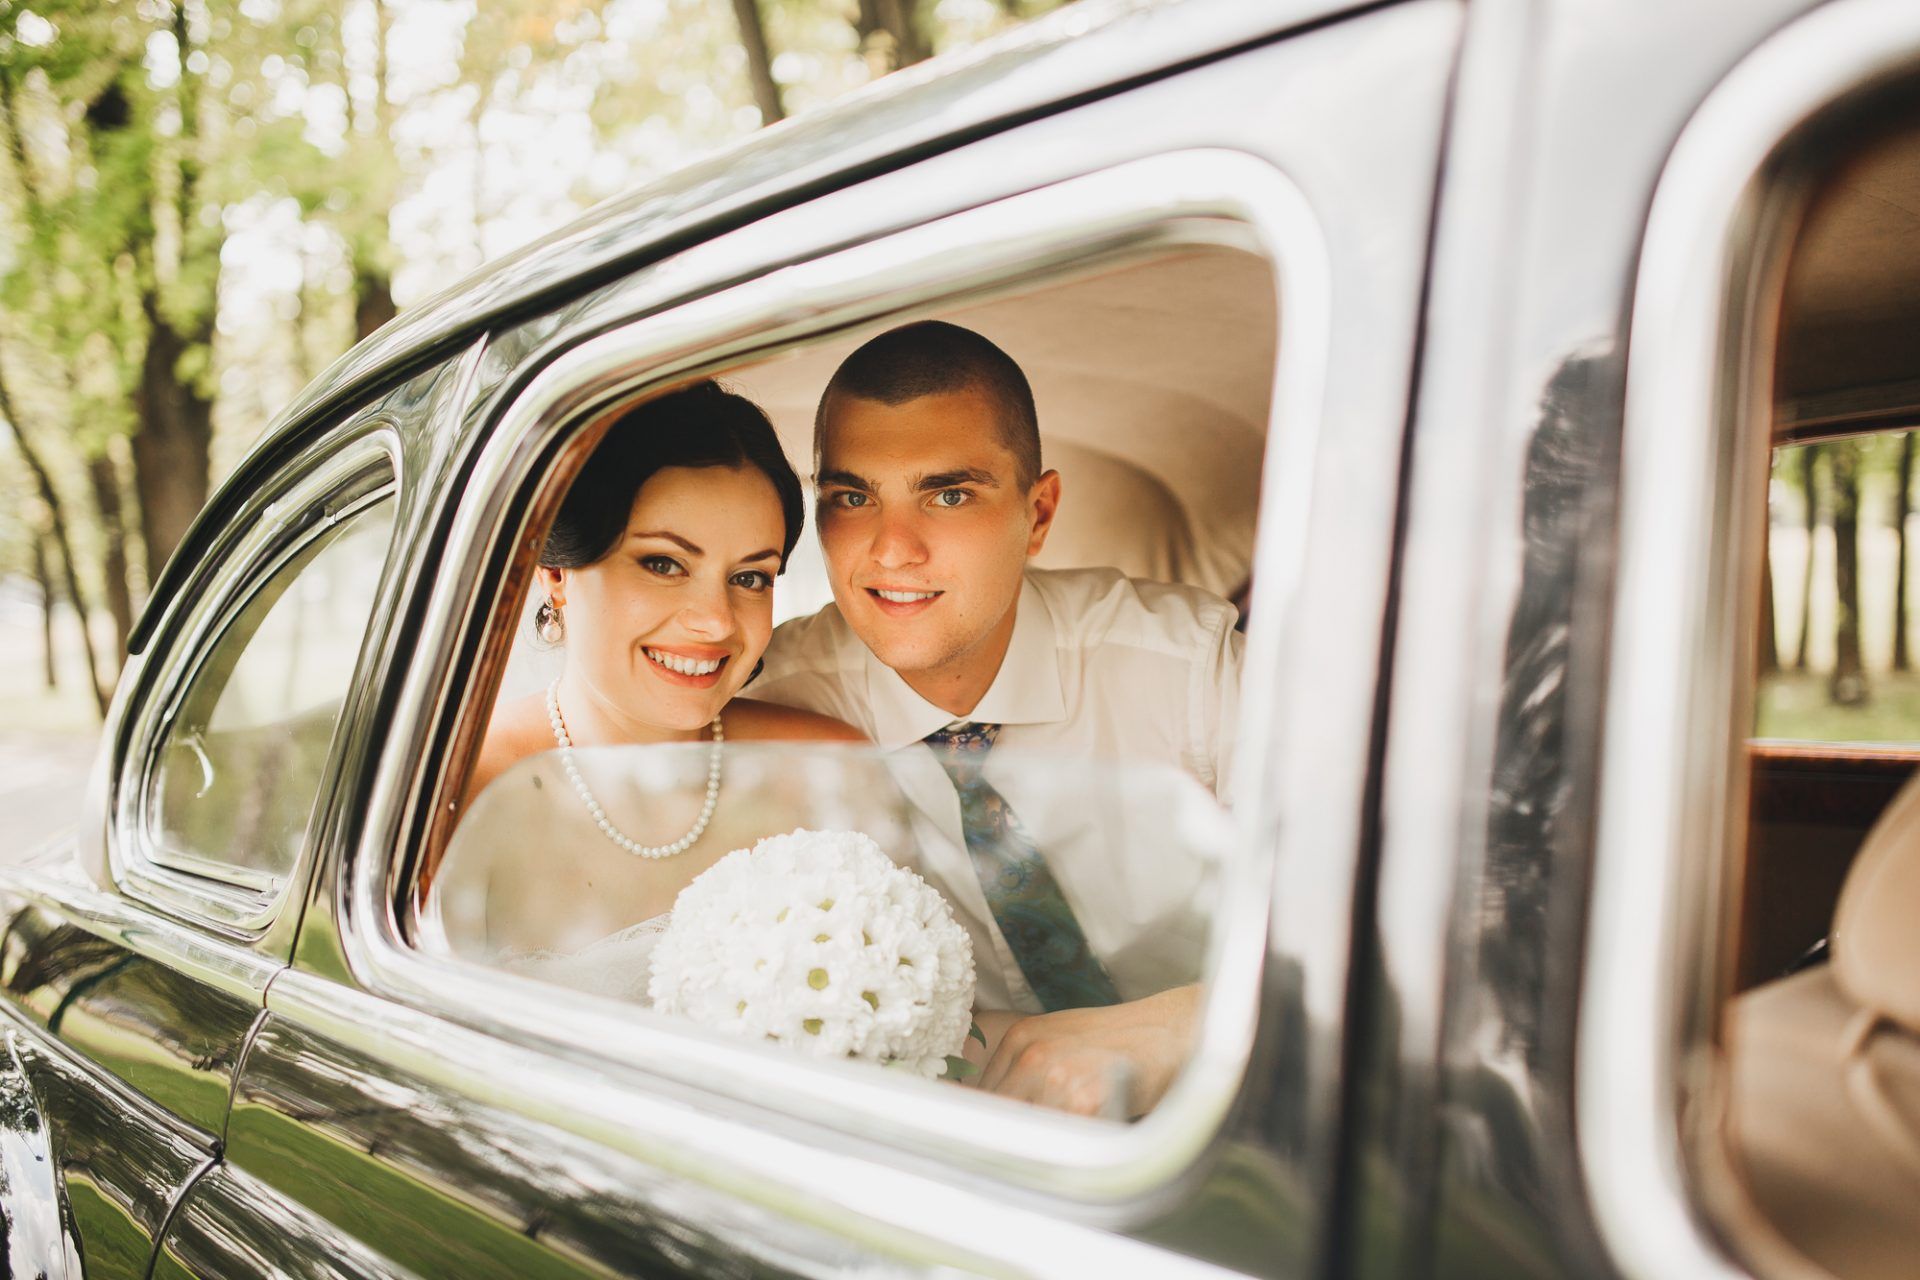 Bride and groom in the back seat of a car.